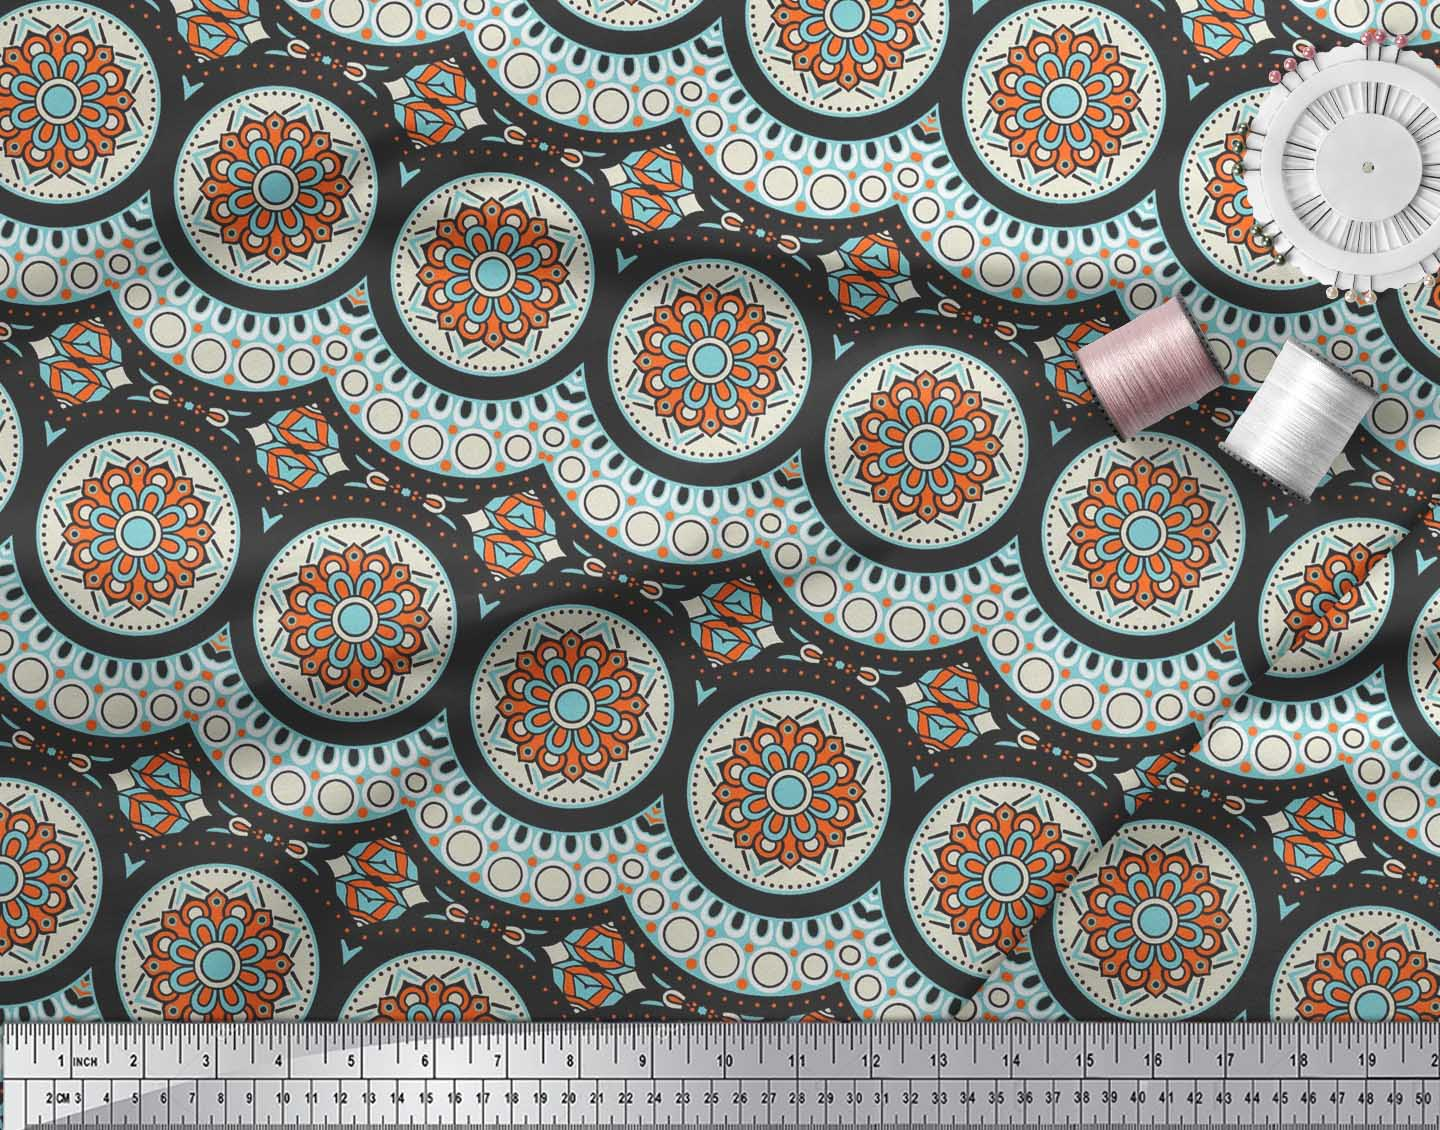 Soimoi-Cotton-Poplin-Fabric-Aboriginal-Mosaic-Printed-Fabric-1-metre-7Ra thumbnail 3